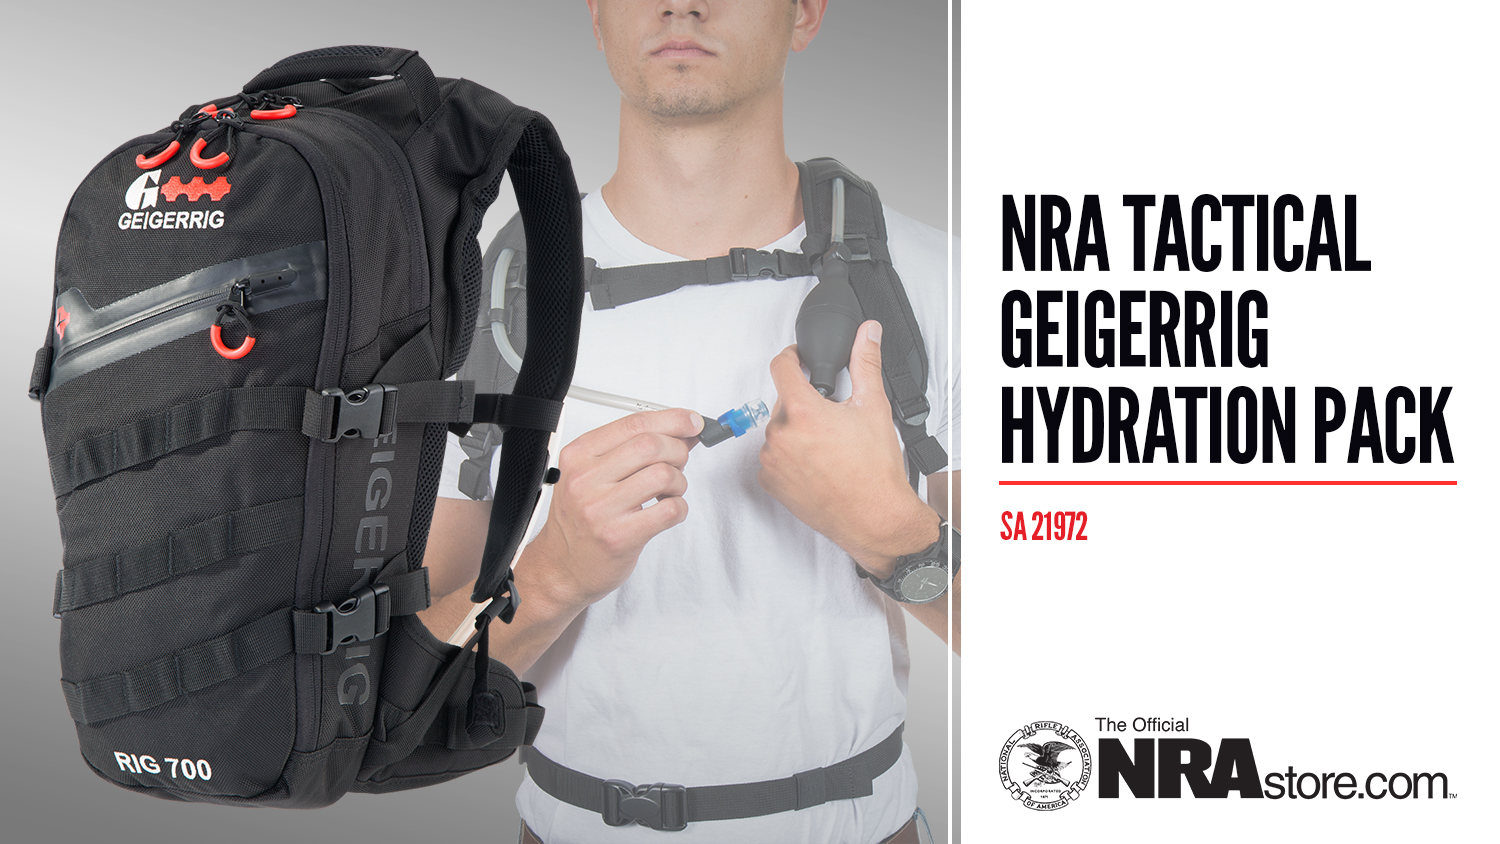 NRAstore Product Highlight: Tactical Geigerrig Hydration Pack